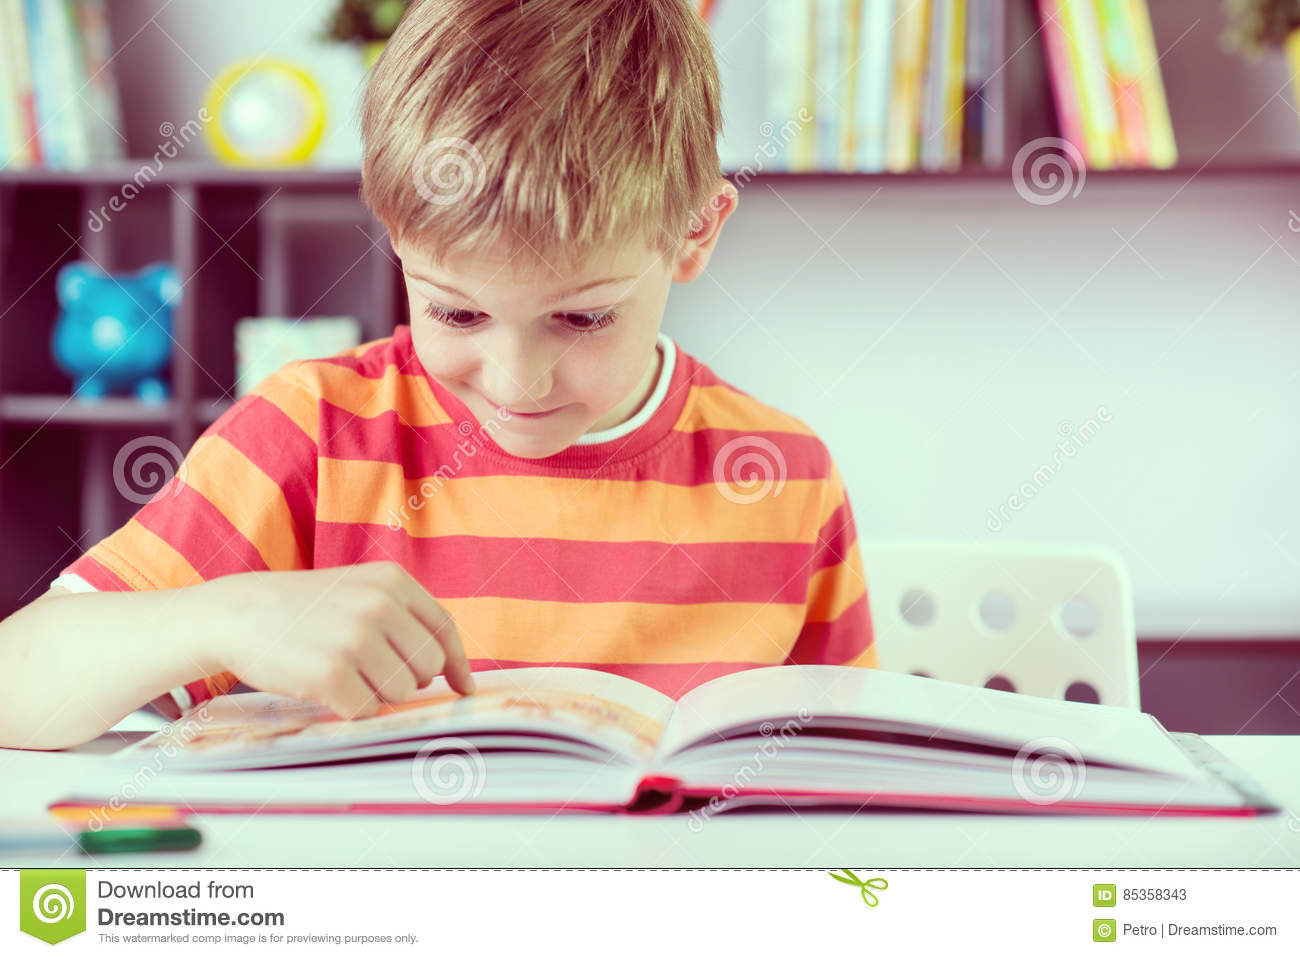 Elementary school boy at desk reading boock